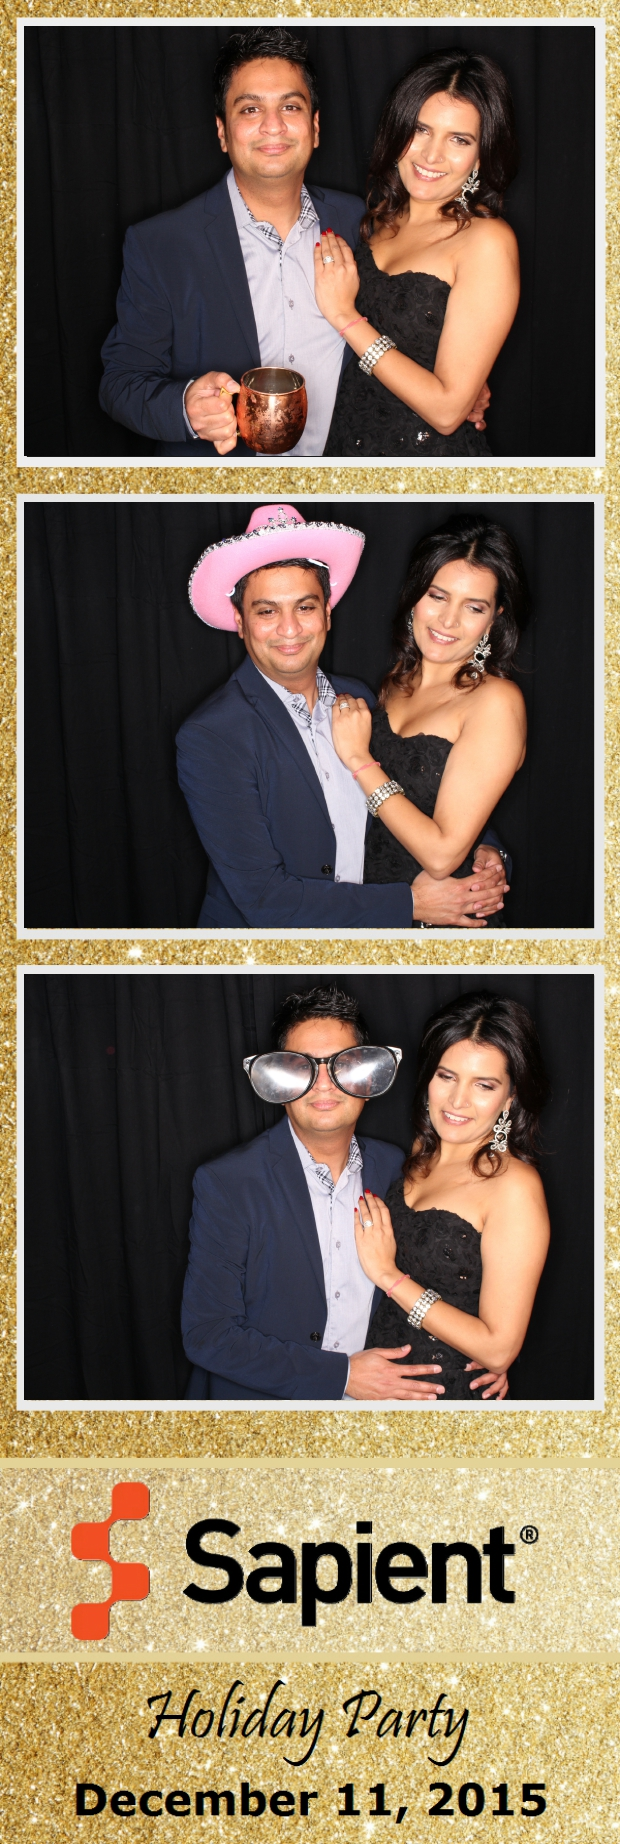 Guest House Events Photo Booth Sapient Holiday Party (50).jpg